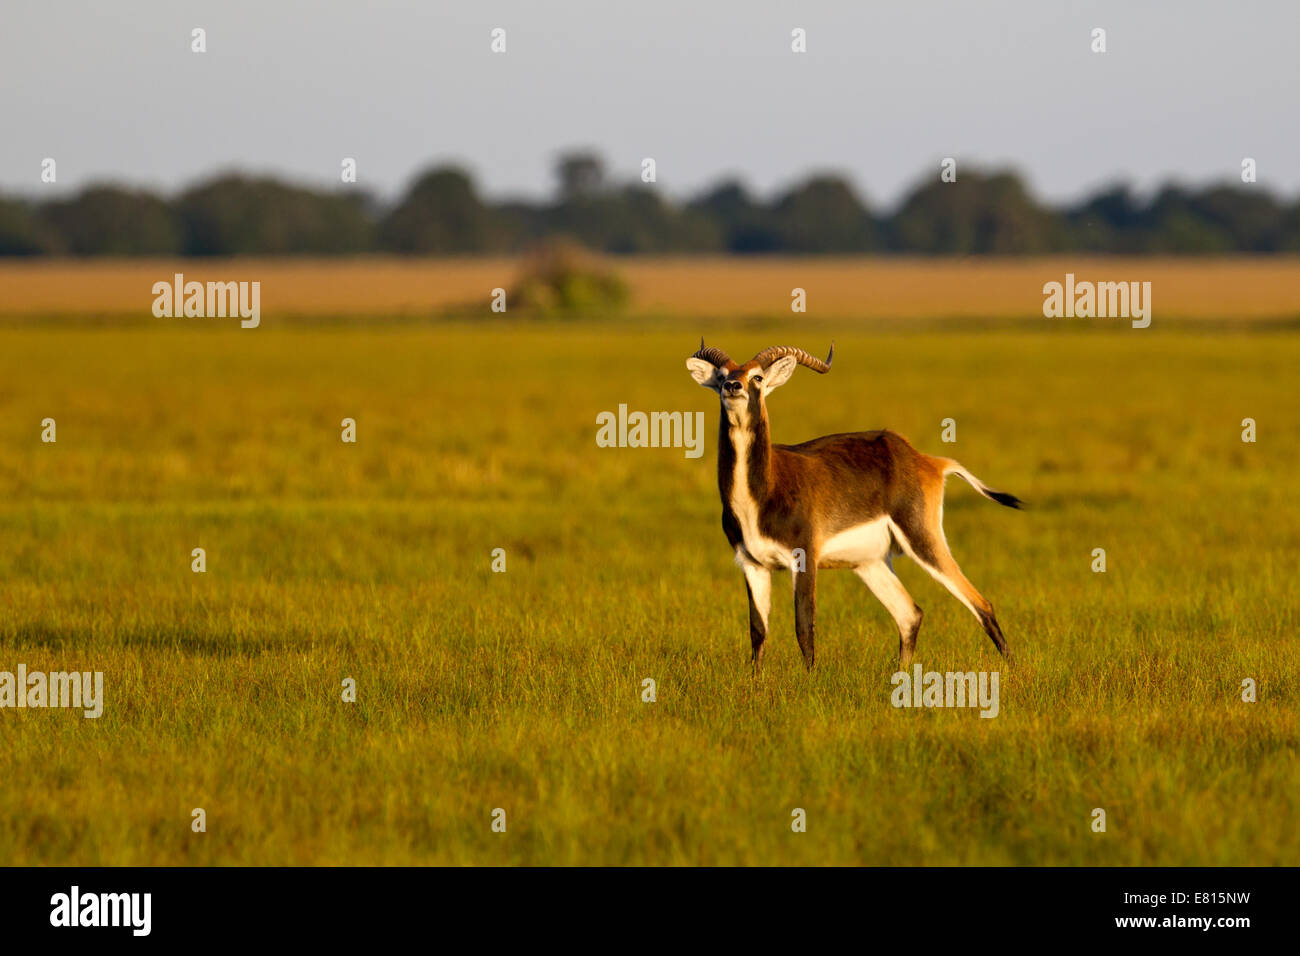 Black lechwe are a water-living antelope endemic to Bangweulu Wetlands in Zambia - Stock Image